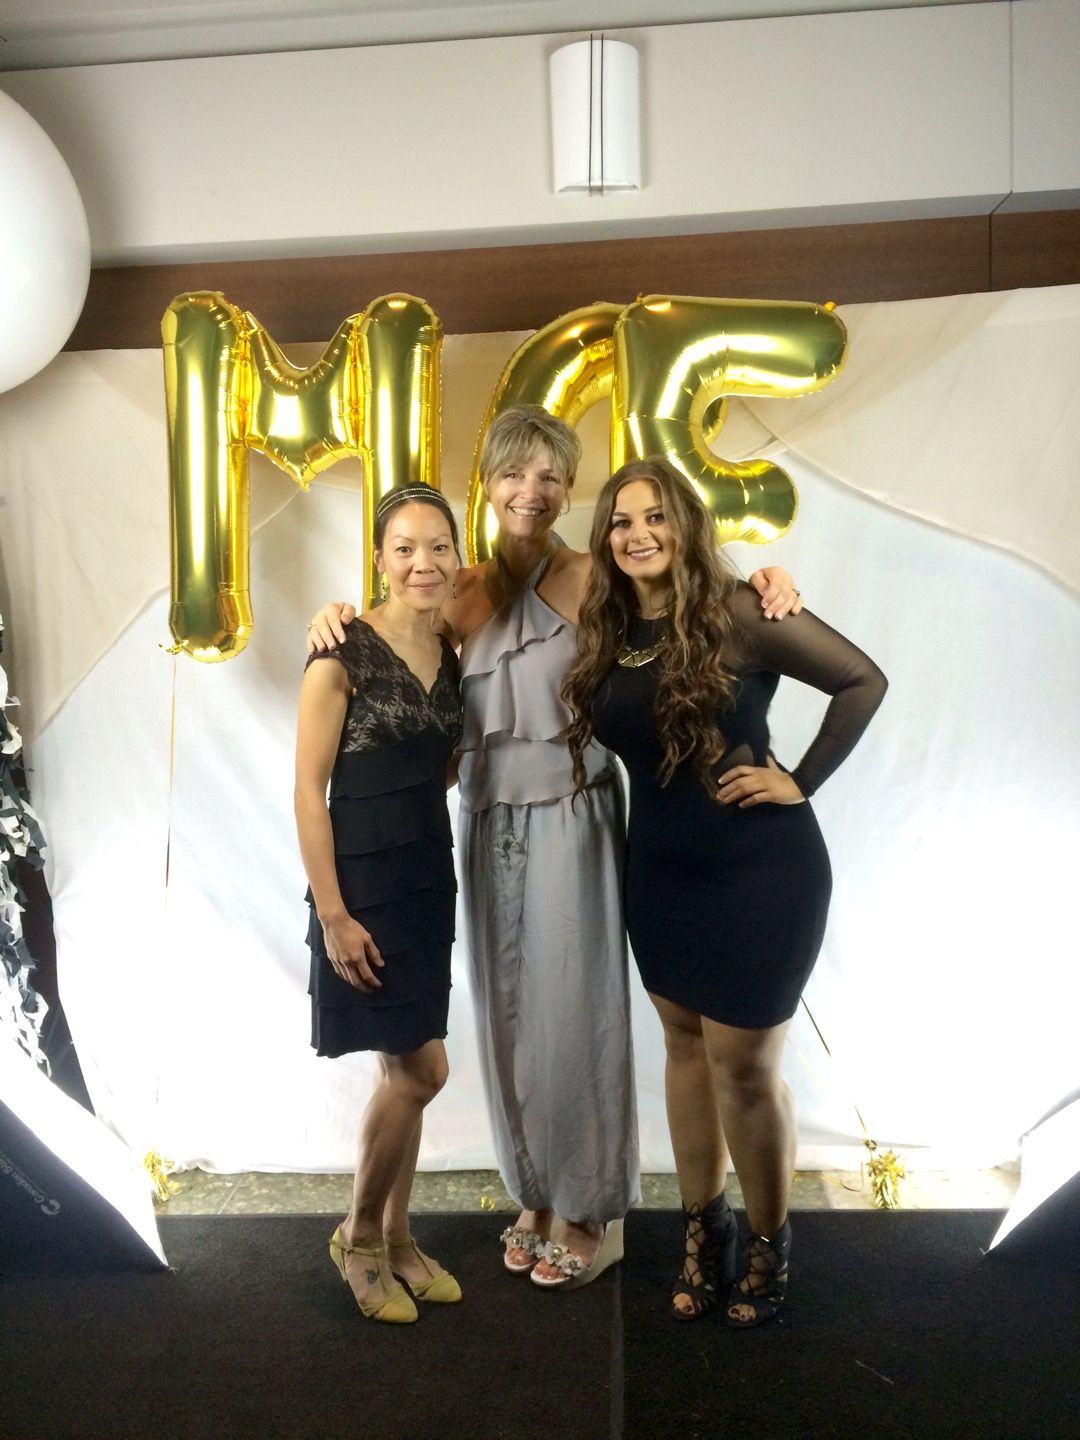 Dr.Sandi Dunn (CEO + Founder) pictured along side Dr.My-My Huynh (Research Scientist) and Luisa D'Amato (Research Technician) at the 21st Annual Michael Cuccione Foundation Gala